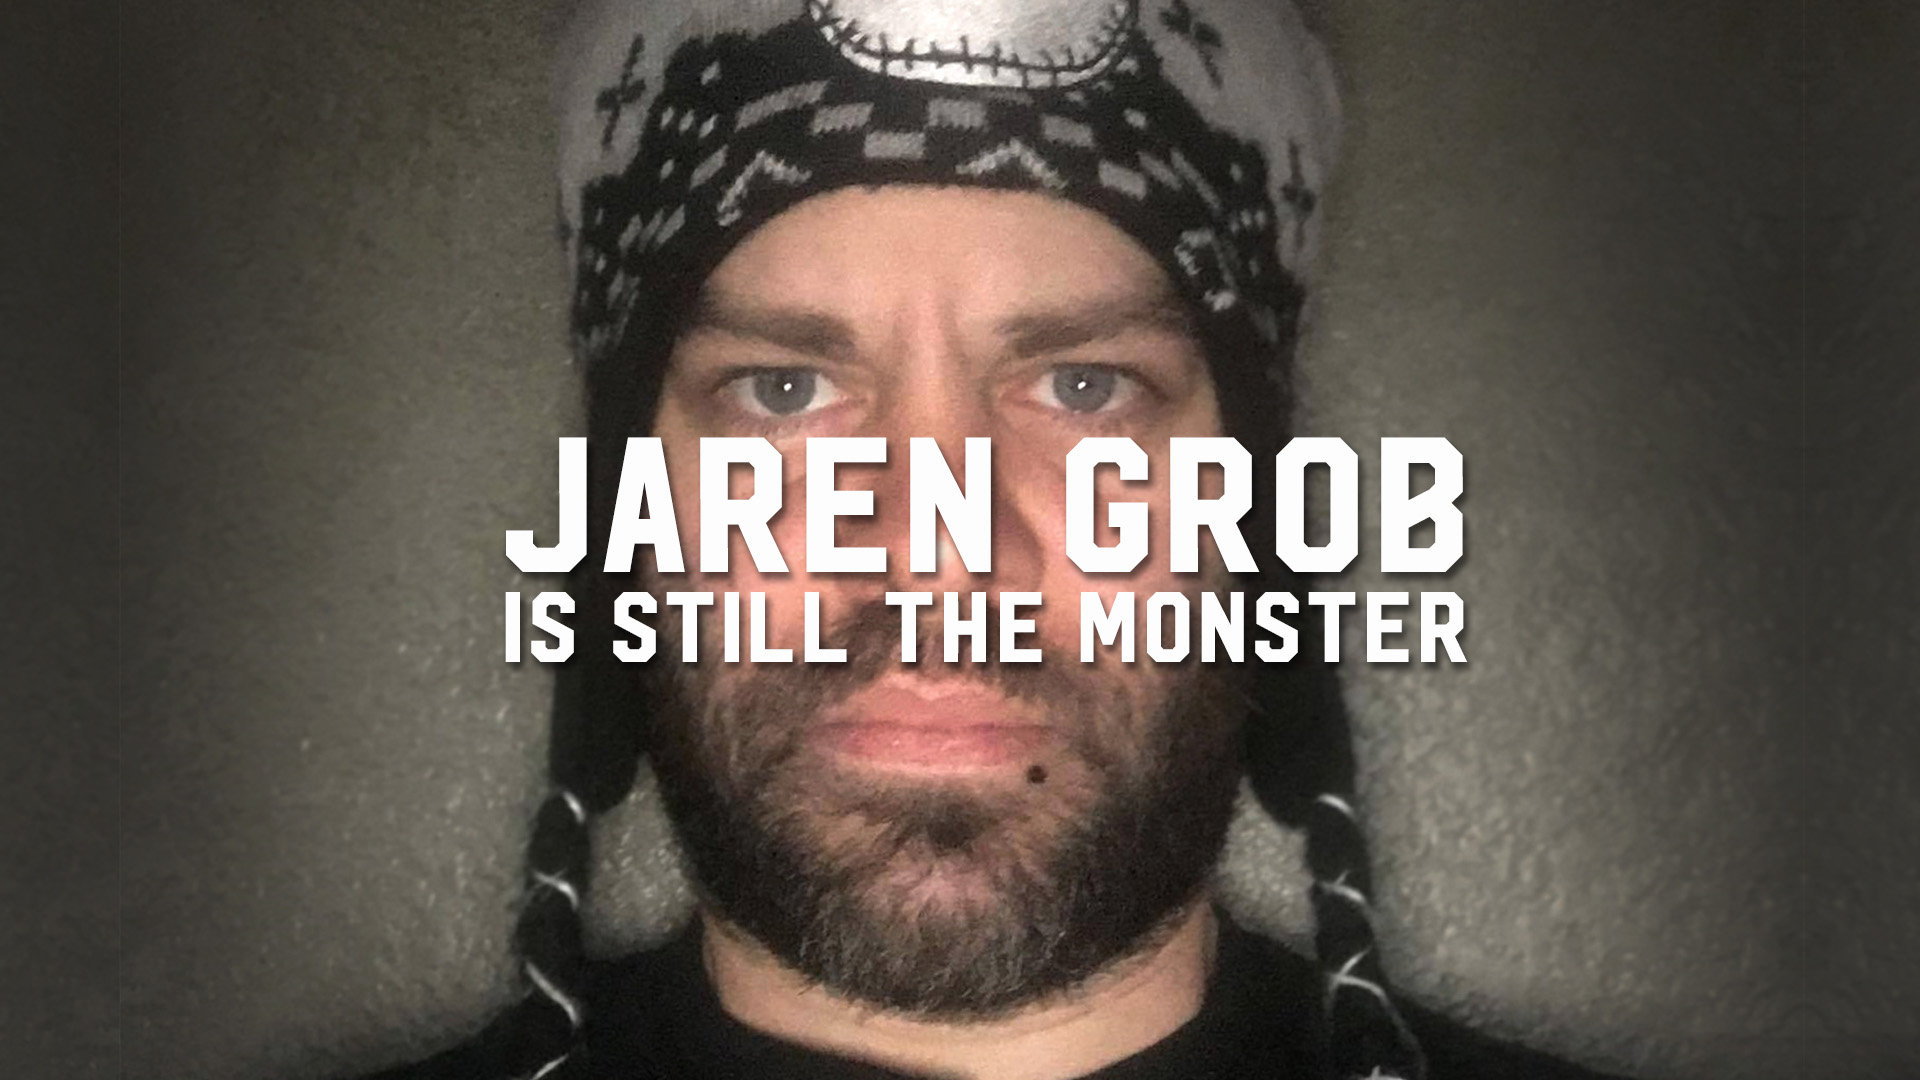 Jaren Grob is still the Monster